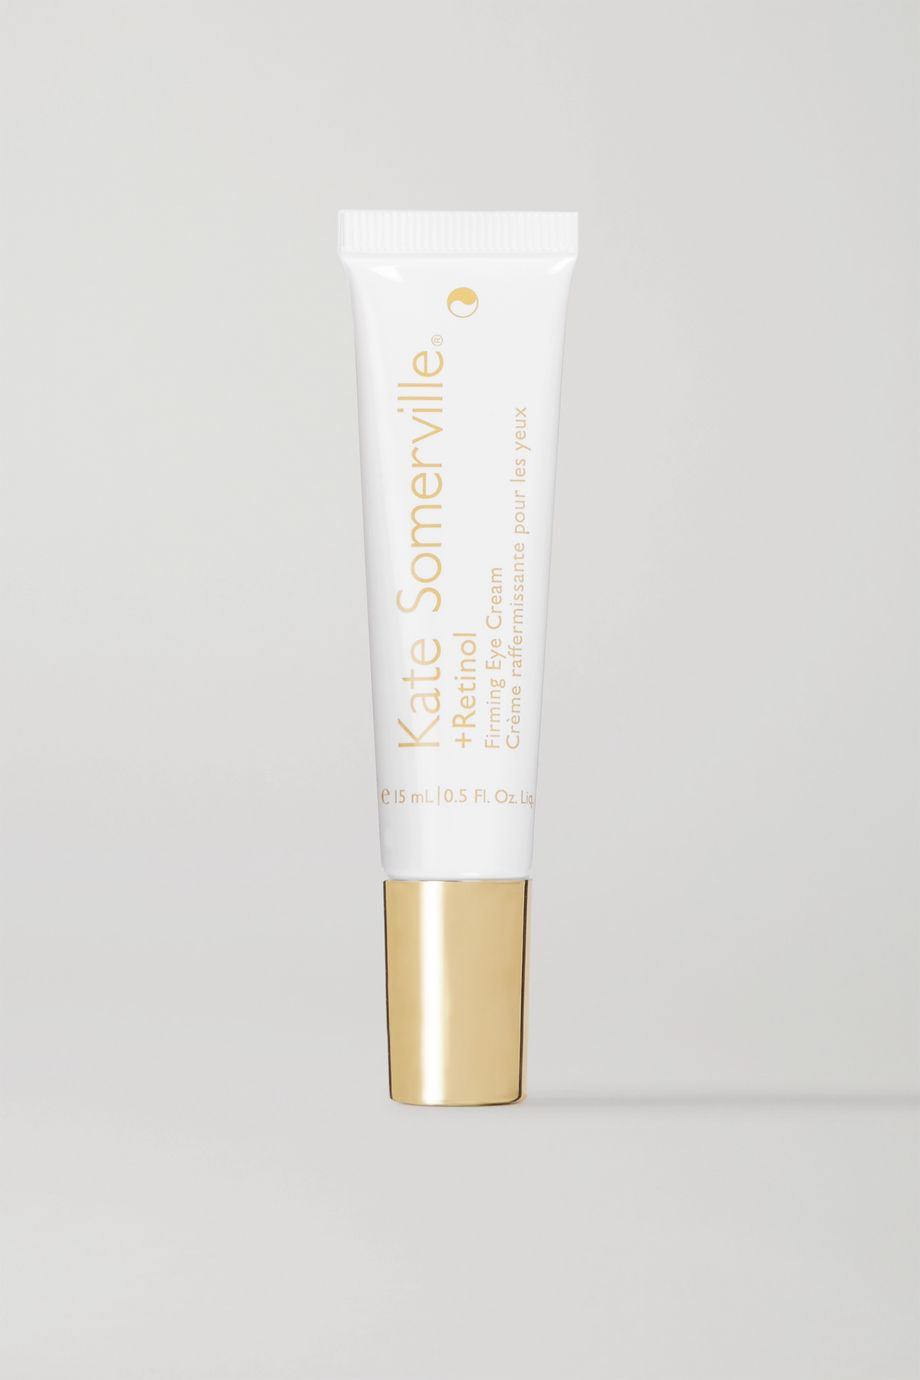 Kate Somerville + Retinol Firming Eye Cream, 15ml